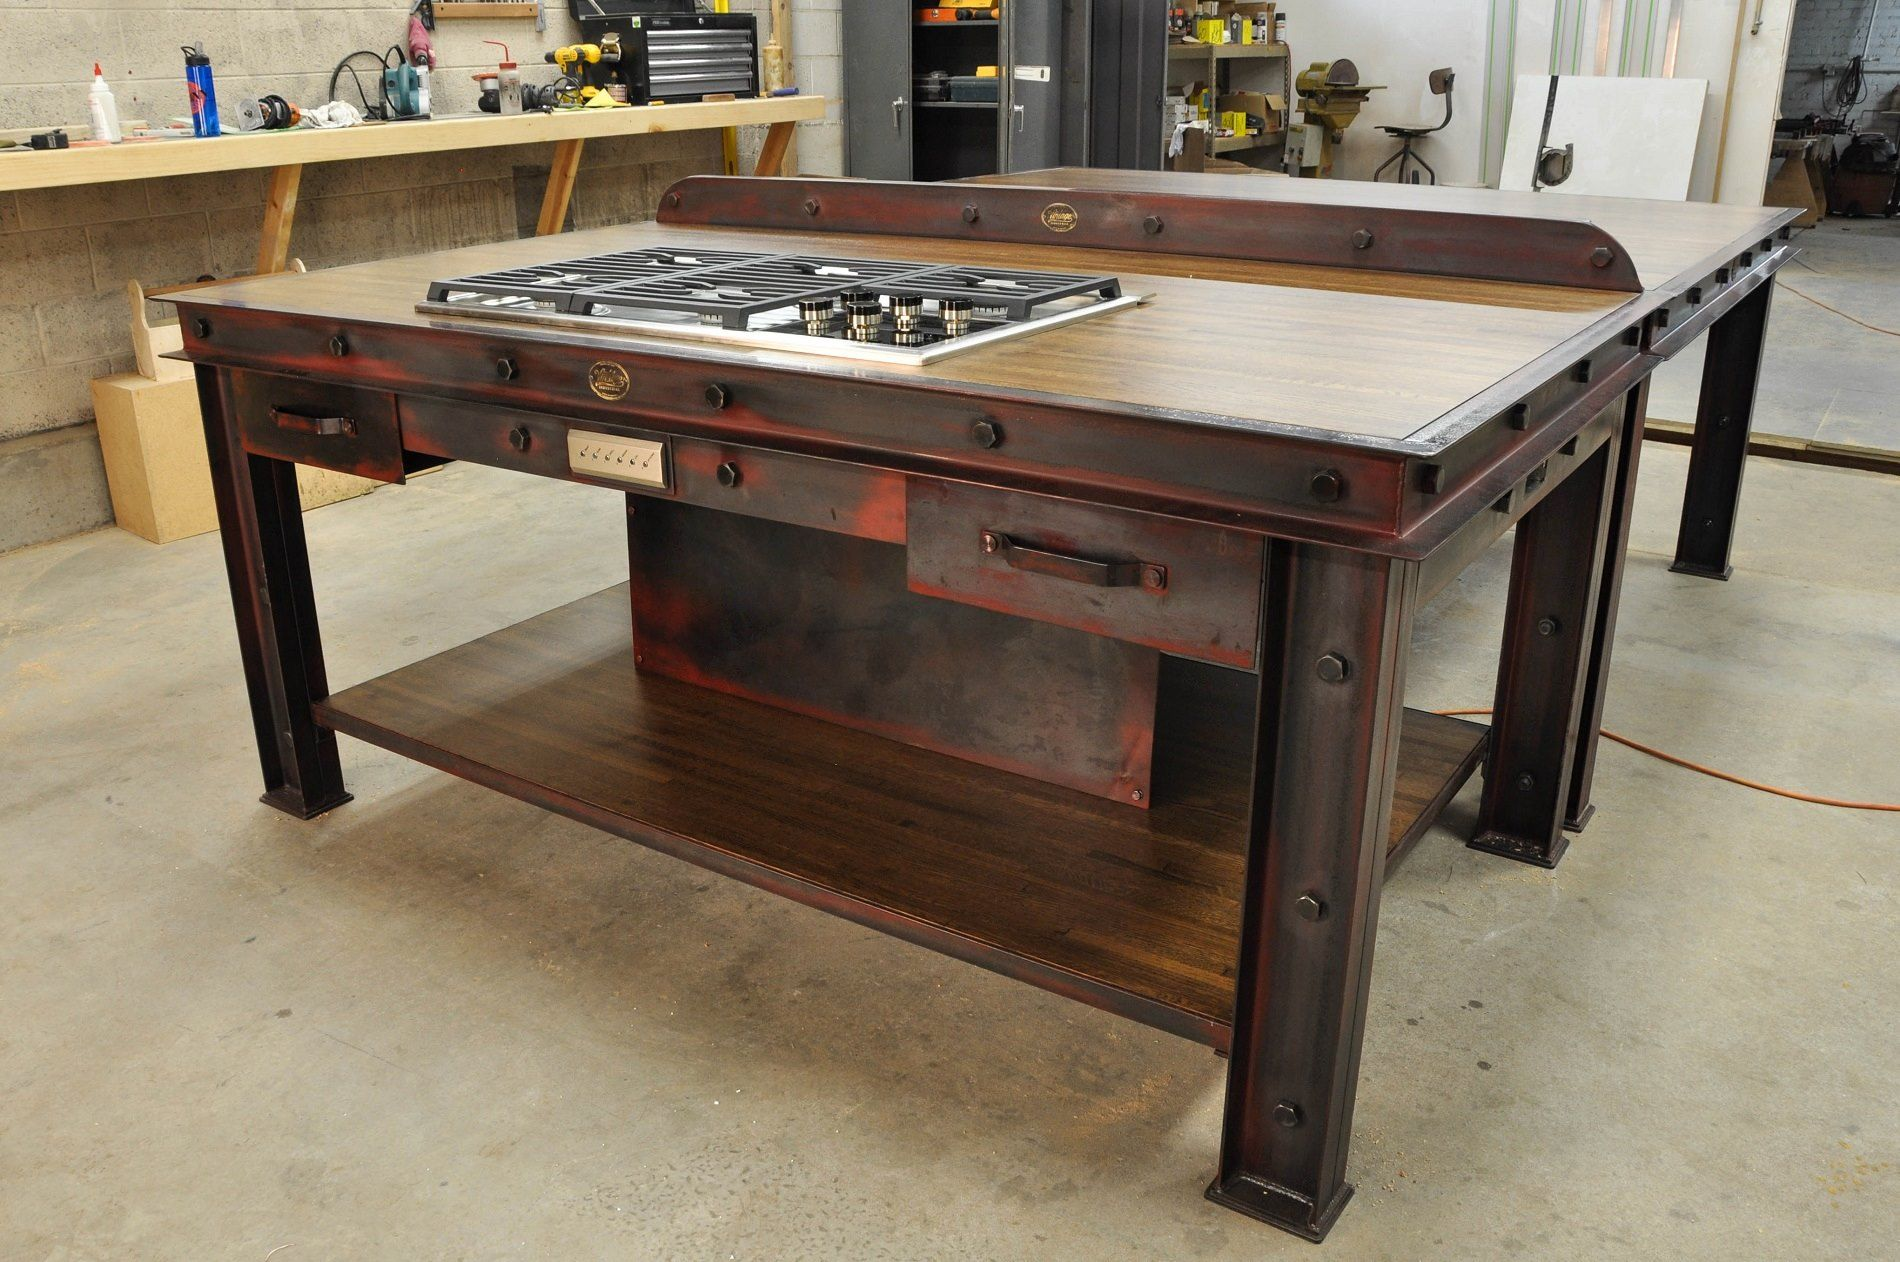 outstanding industrial kitchen island table | Vintage Industrial Kitchen Island | Industrial furniture ...